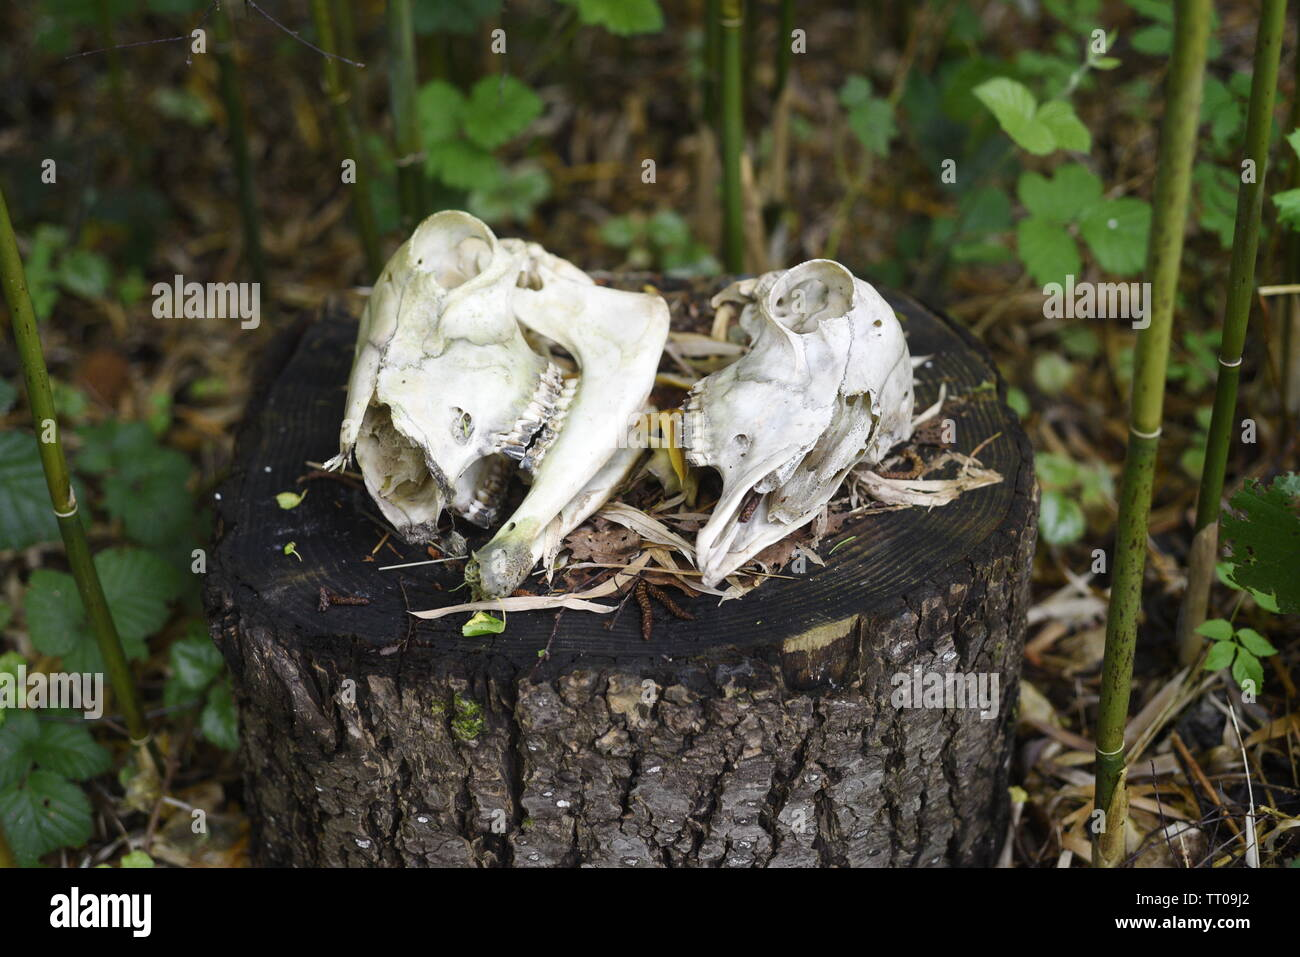 Two small mammal skulls on a tree stump in a bamboo forest - Stock Image